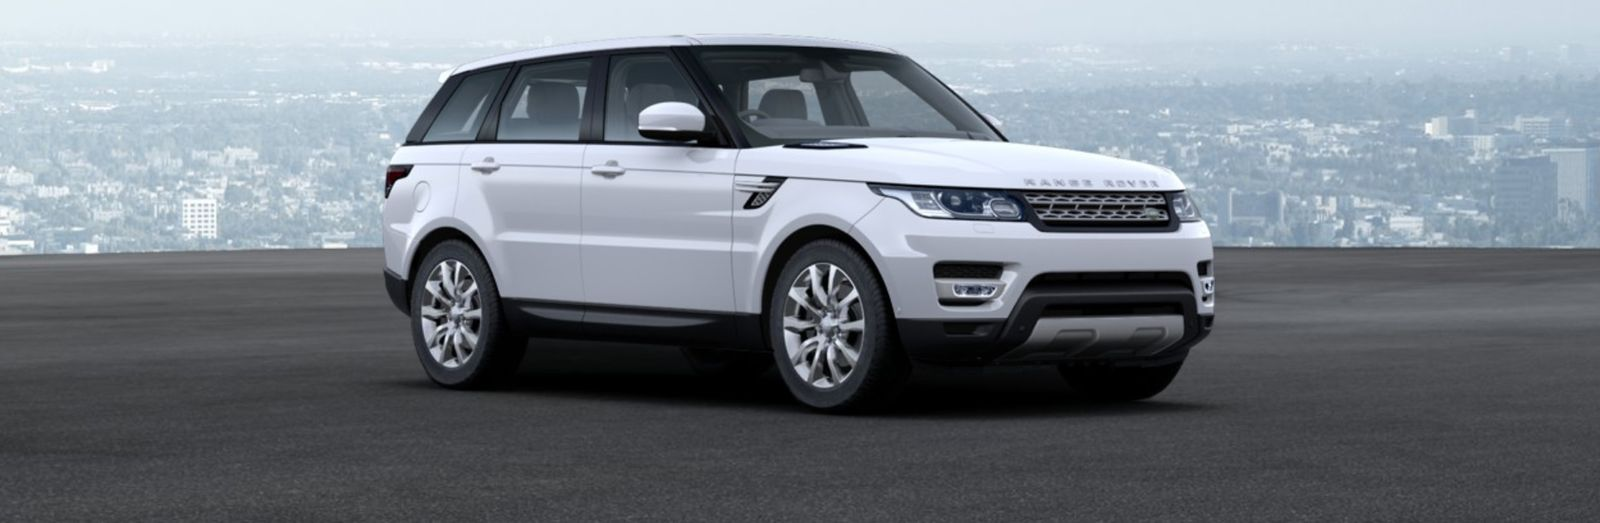 Range Rover Se Vs Hse >> 2018 Land Rover Sport Hse - New Car Release Date and Review 2018 | Amanda Felicia